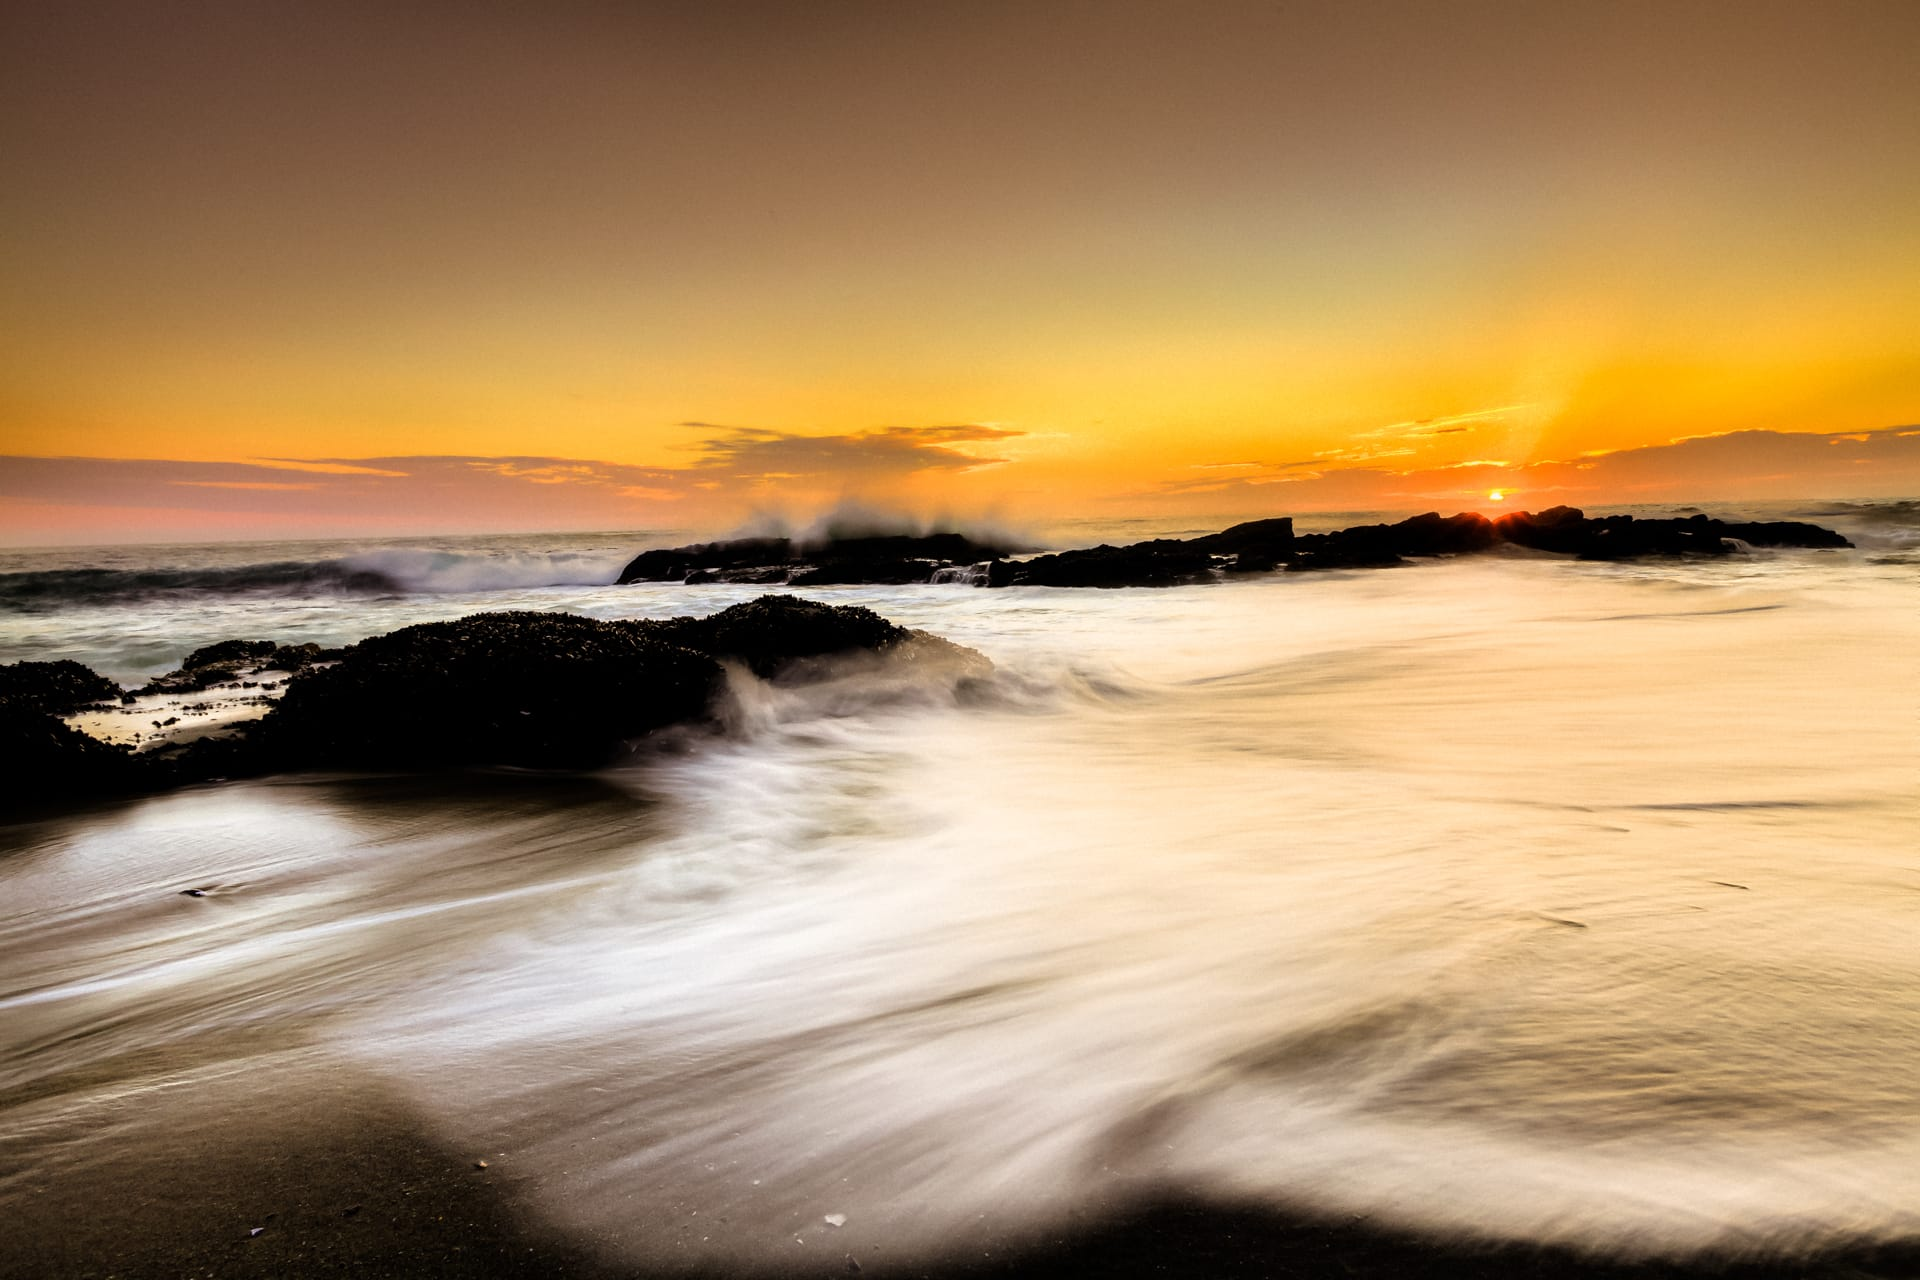 Orange Sky of Laguna Beach, HDR Photography, Beach Photography